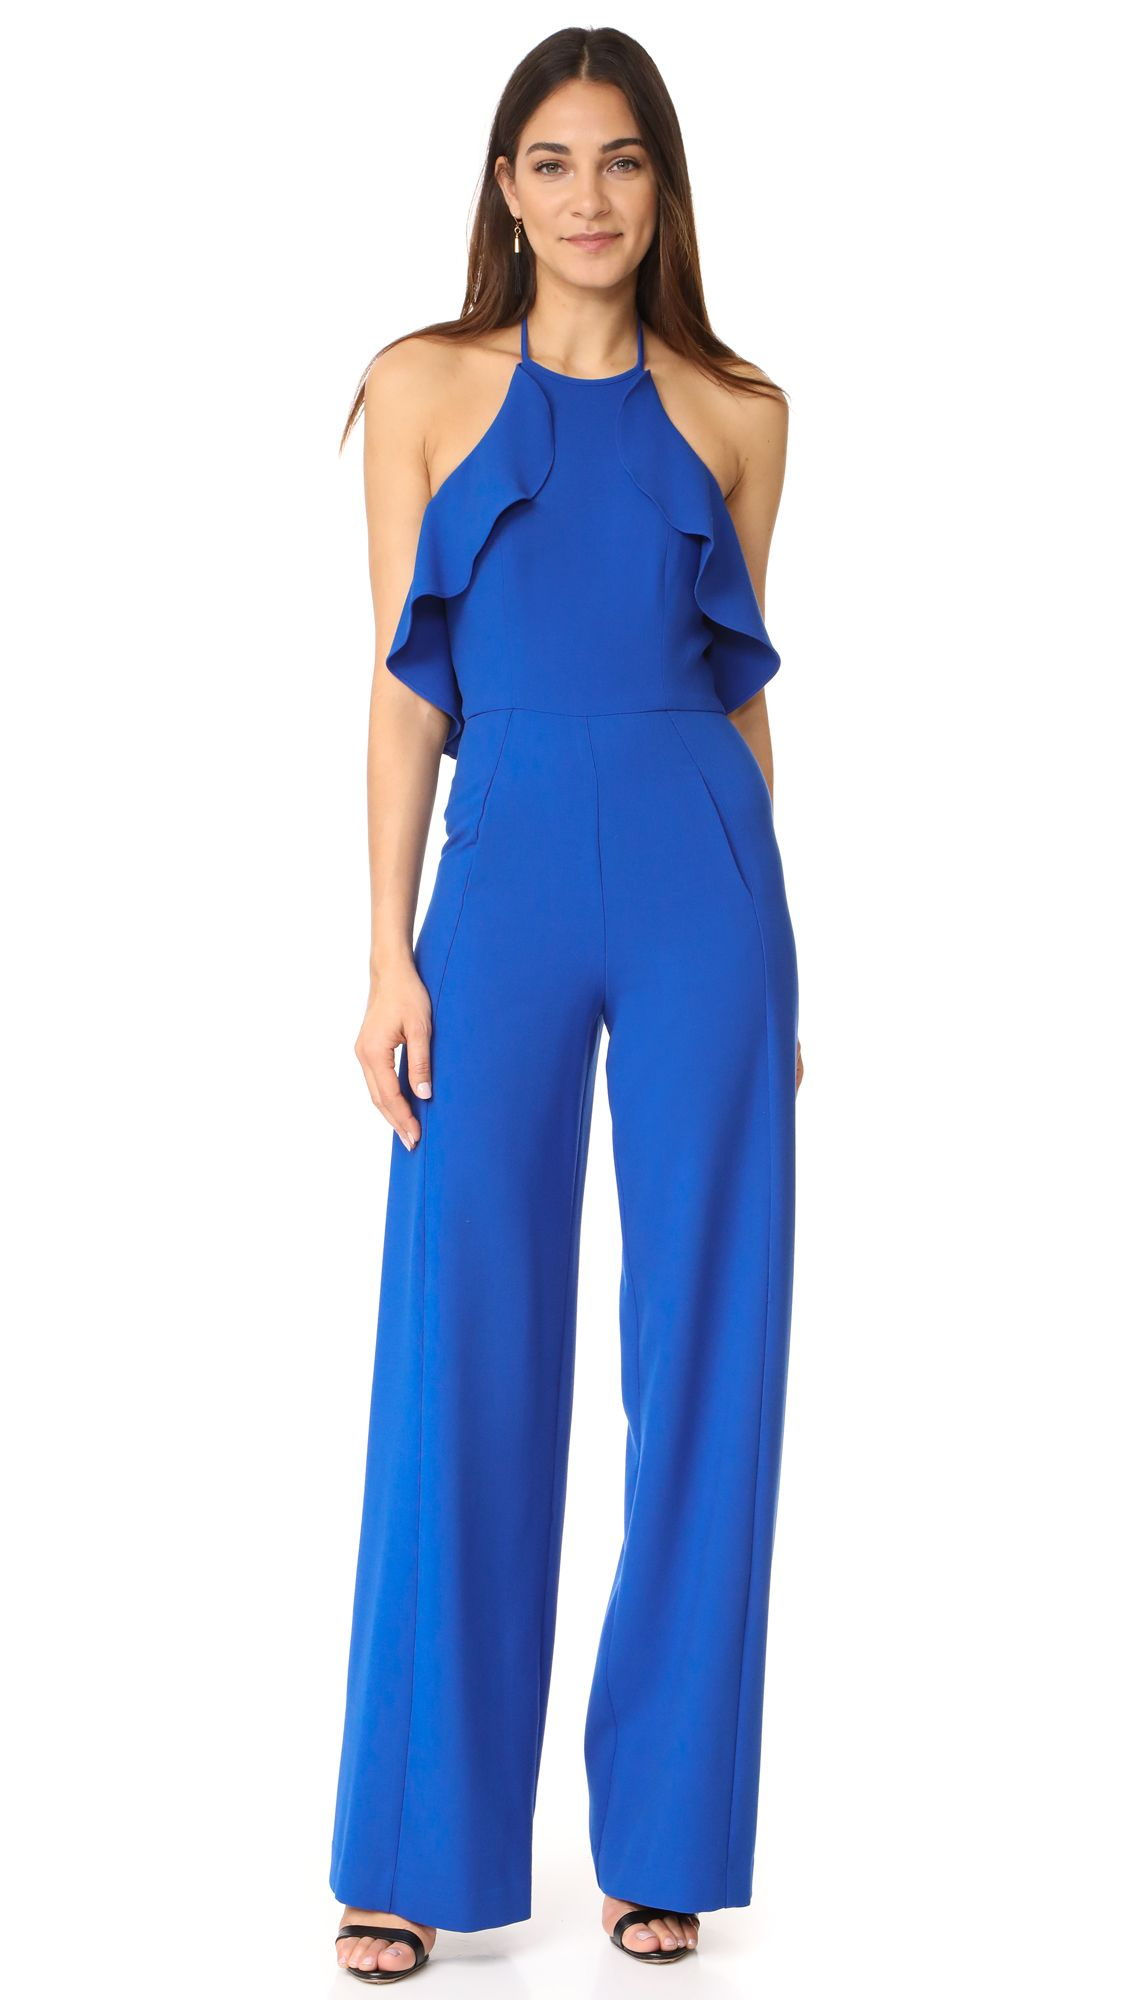 4976f0ada072 15 Jumpsuits You Can Absolutely Wear as a Wedding Guest